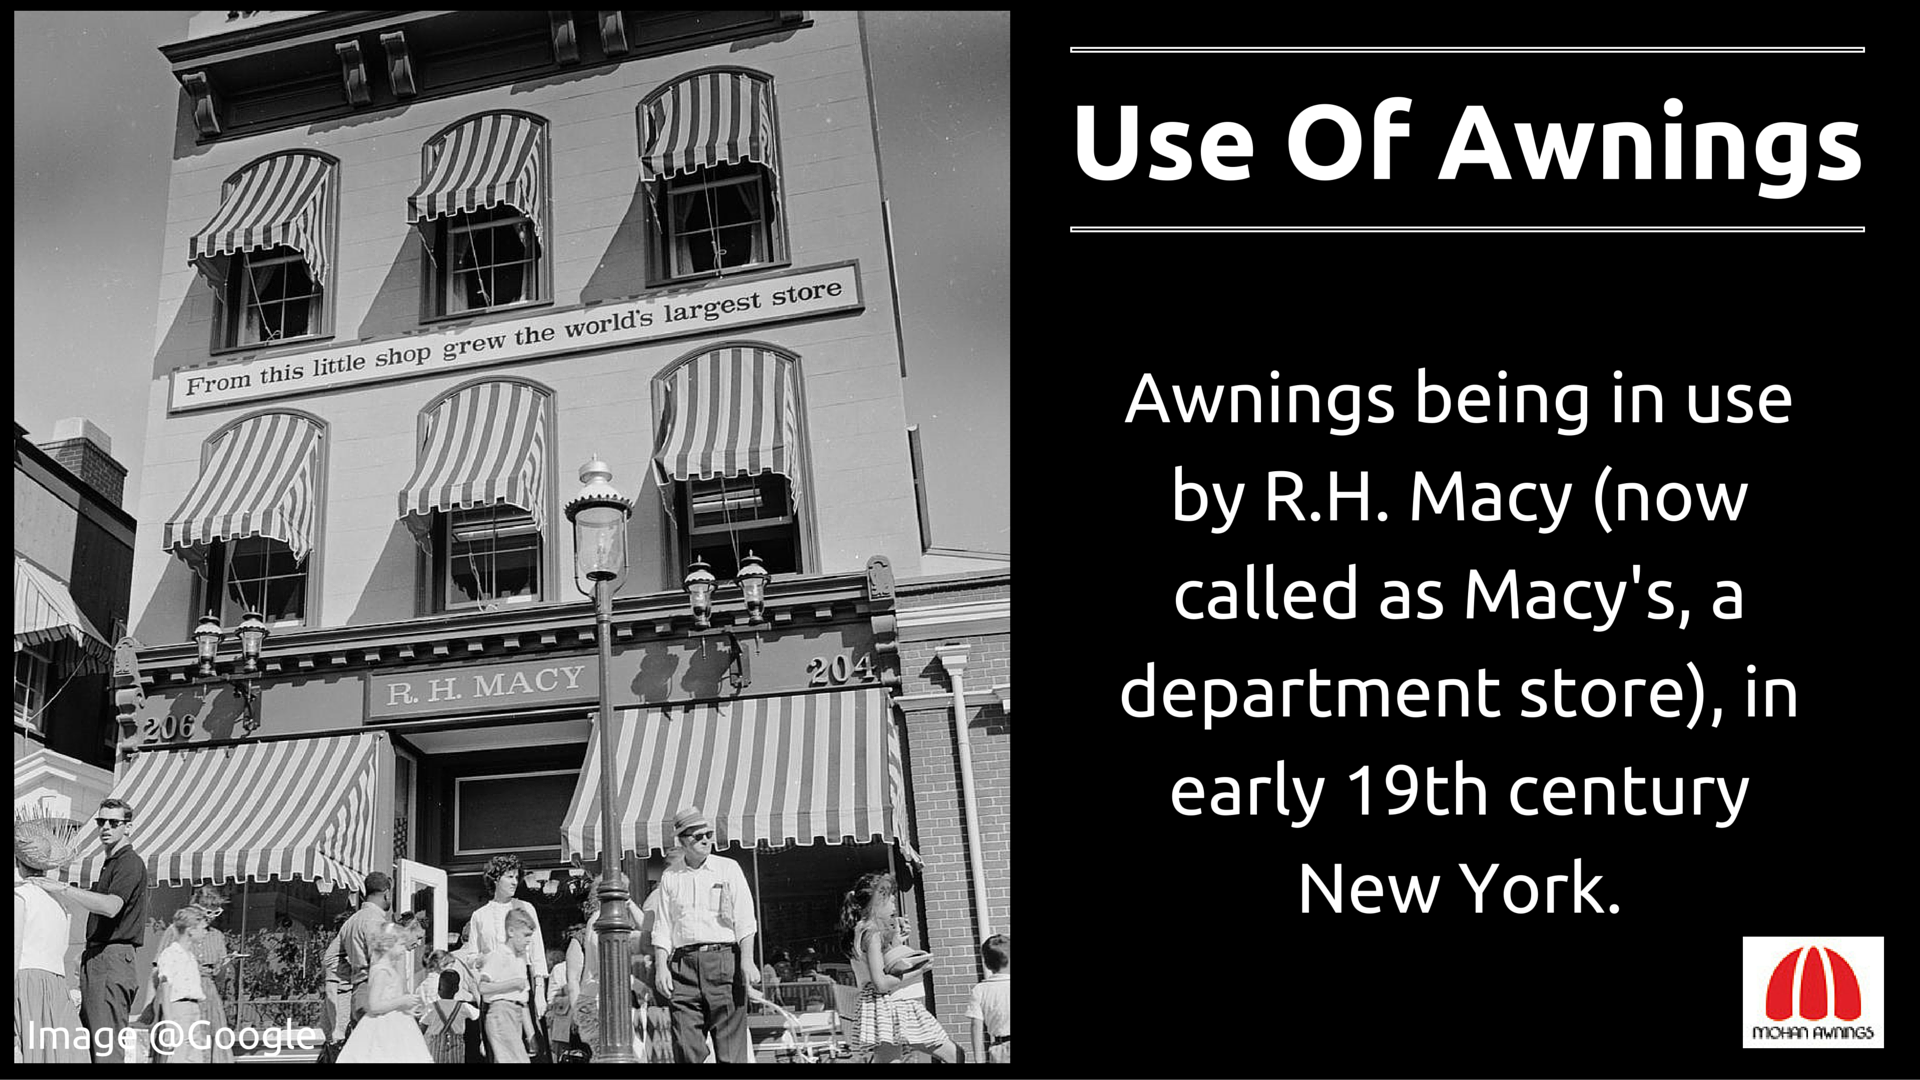 Here S Something About Awnings That We Wish To Share With You All Awning Tuesdaytrivia Macy Department Store Awning Department Store